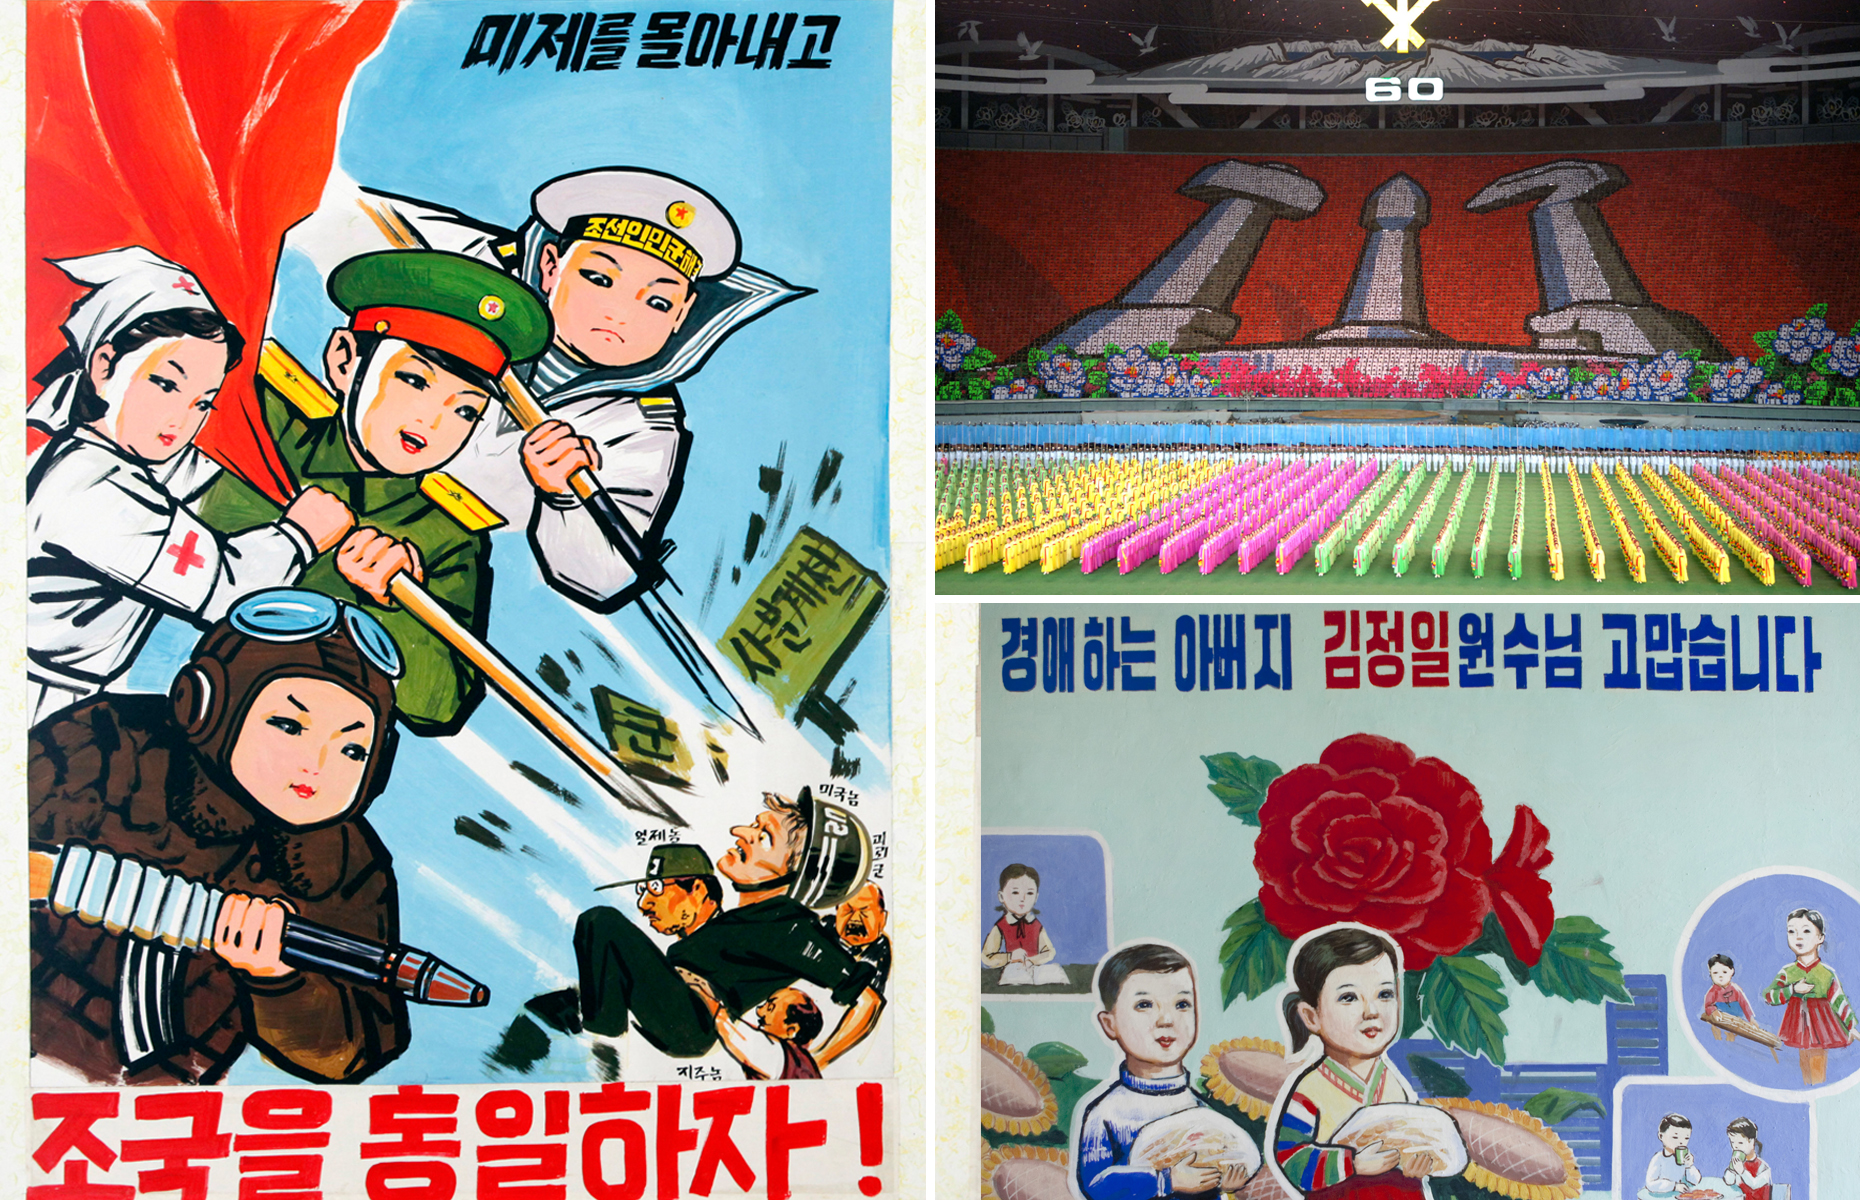 Pomp and propaganda in North Korea